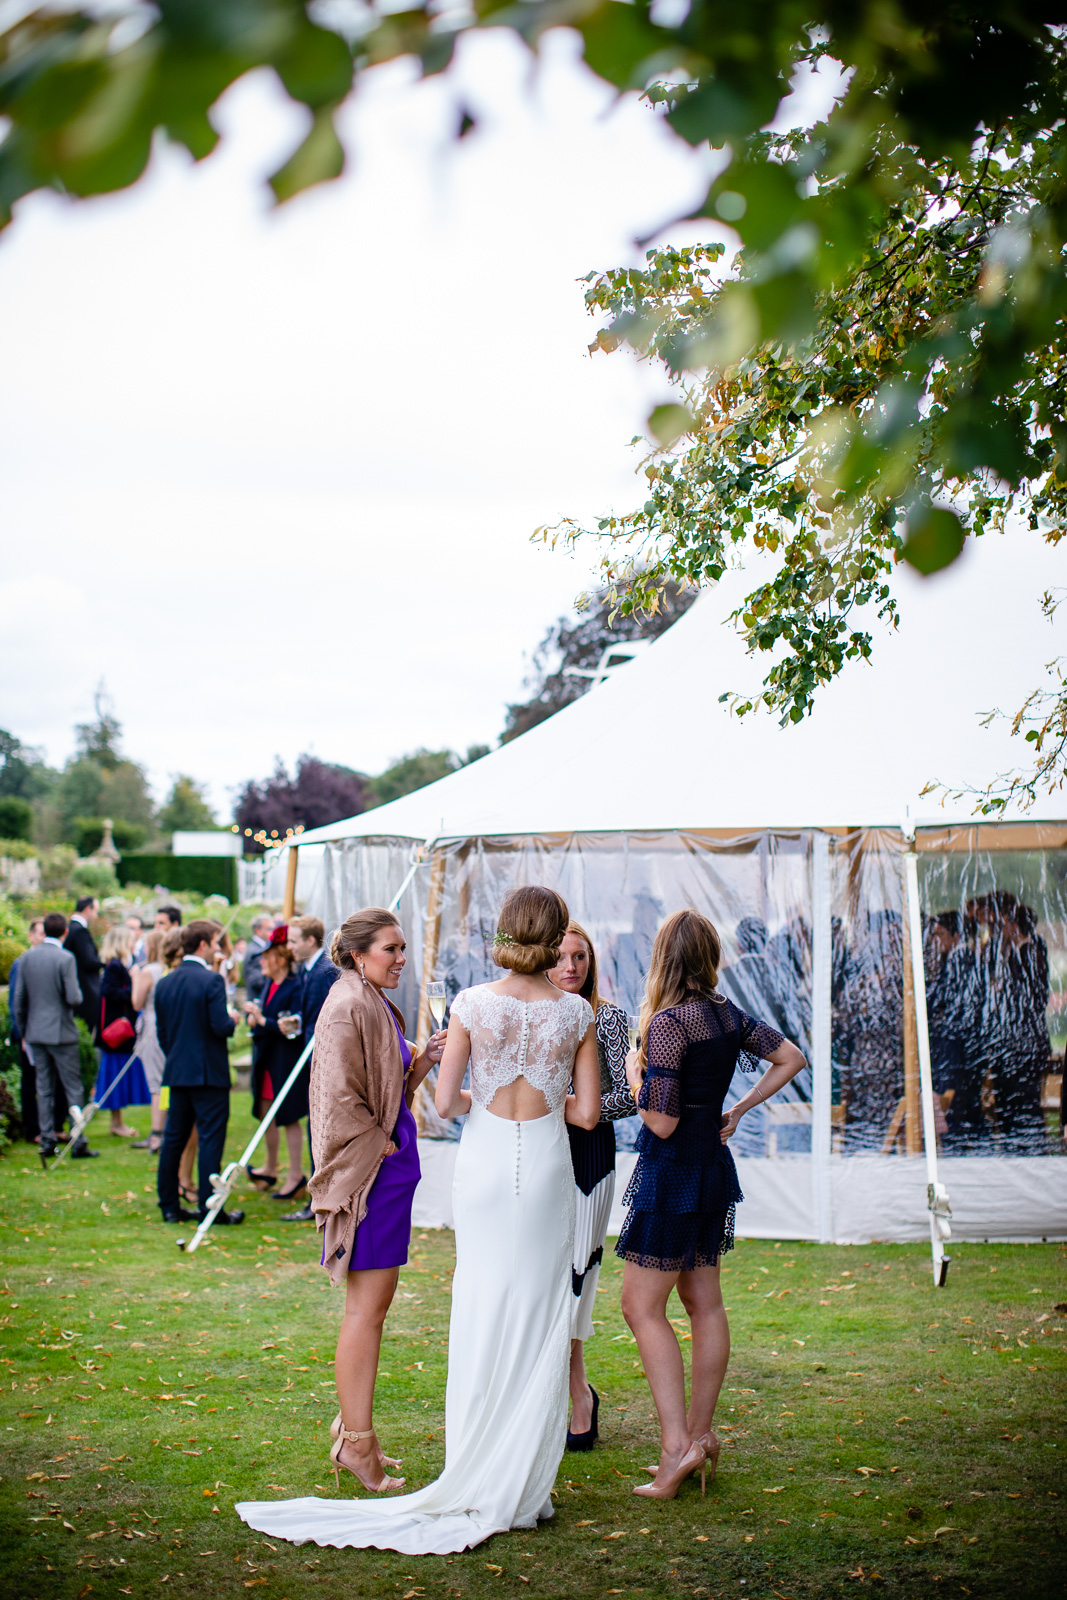 Emily & Ed's PapaKåta Sperry Tent wedding at Buckhurst Park captured by Tony Hart Photography: Bridal Style, Dress by Mirror Mirror